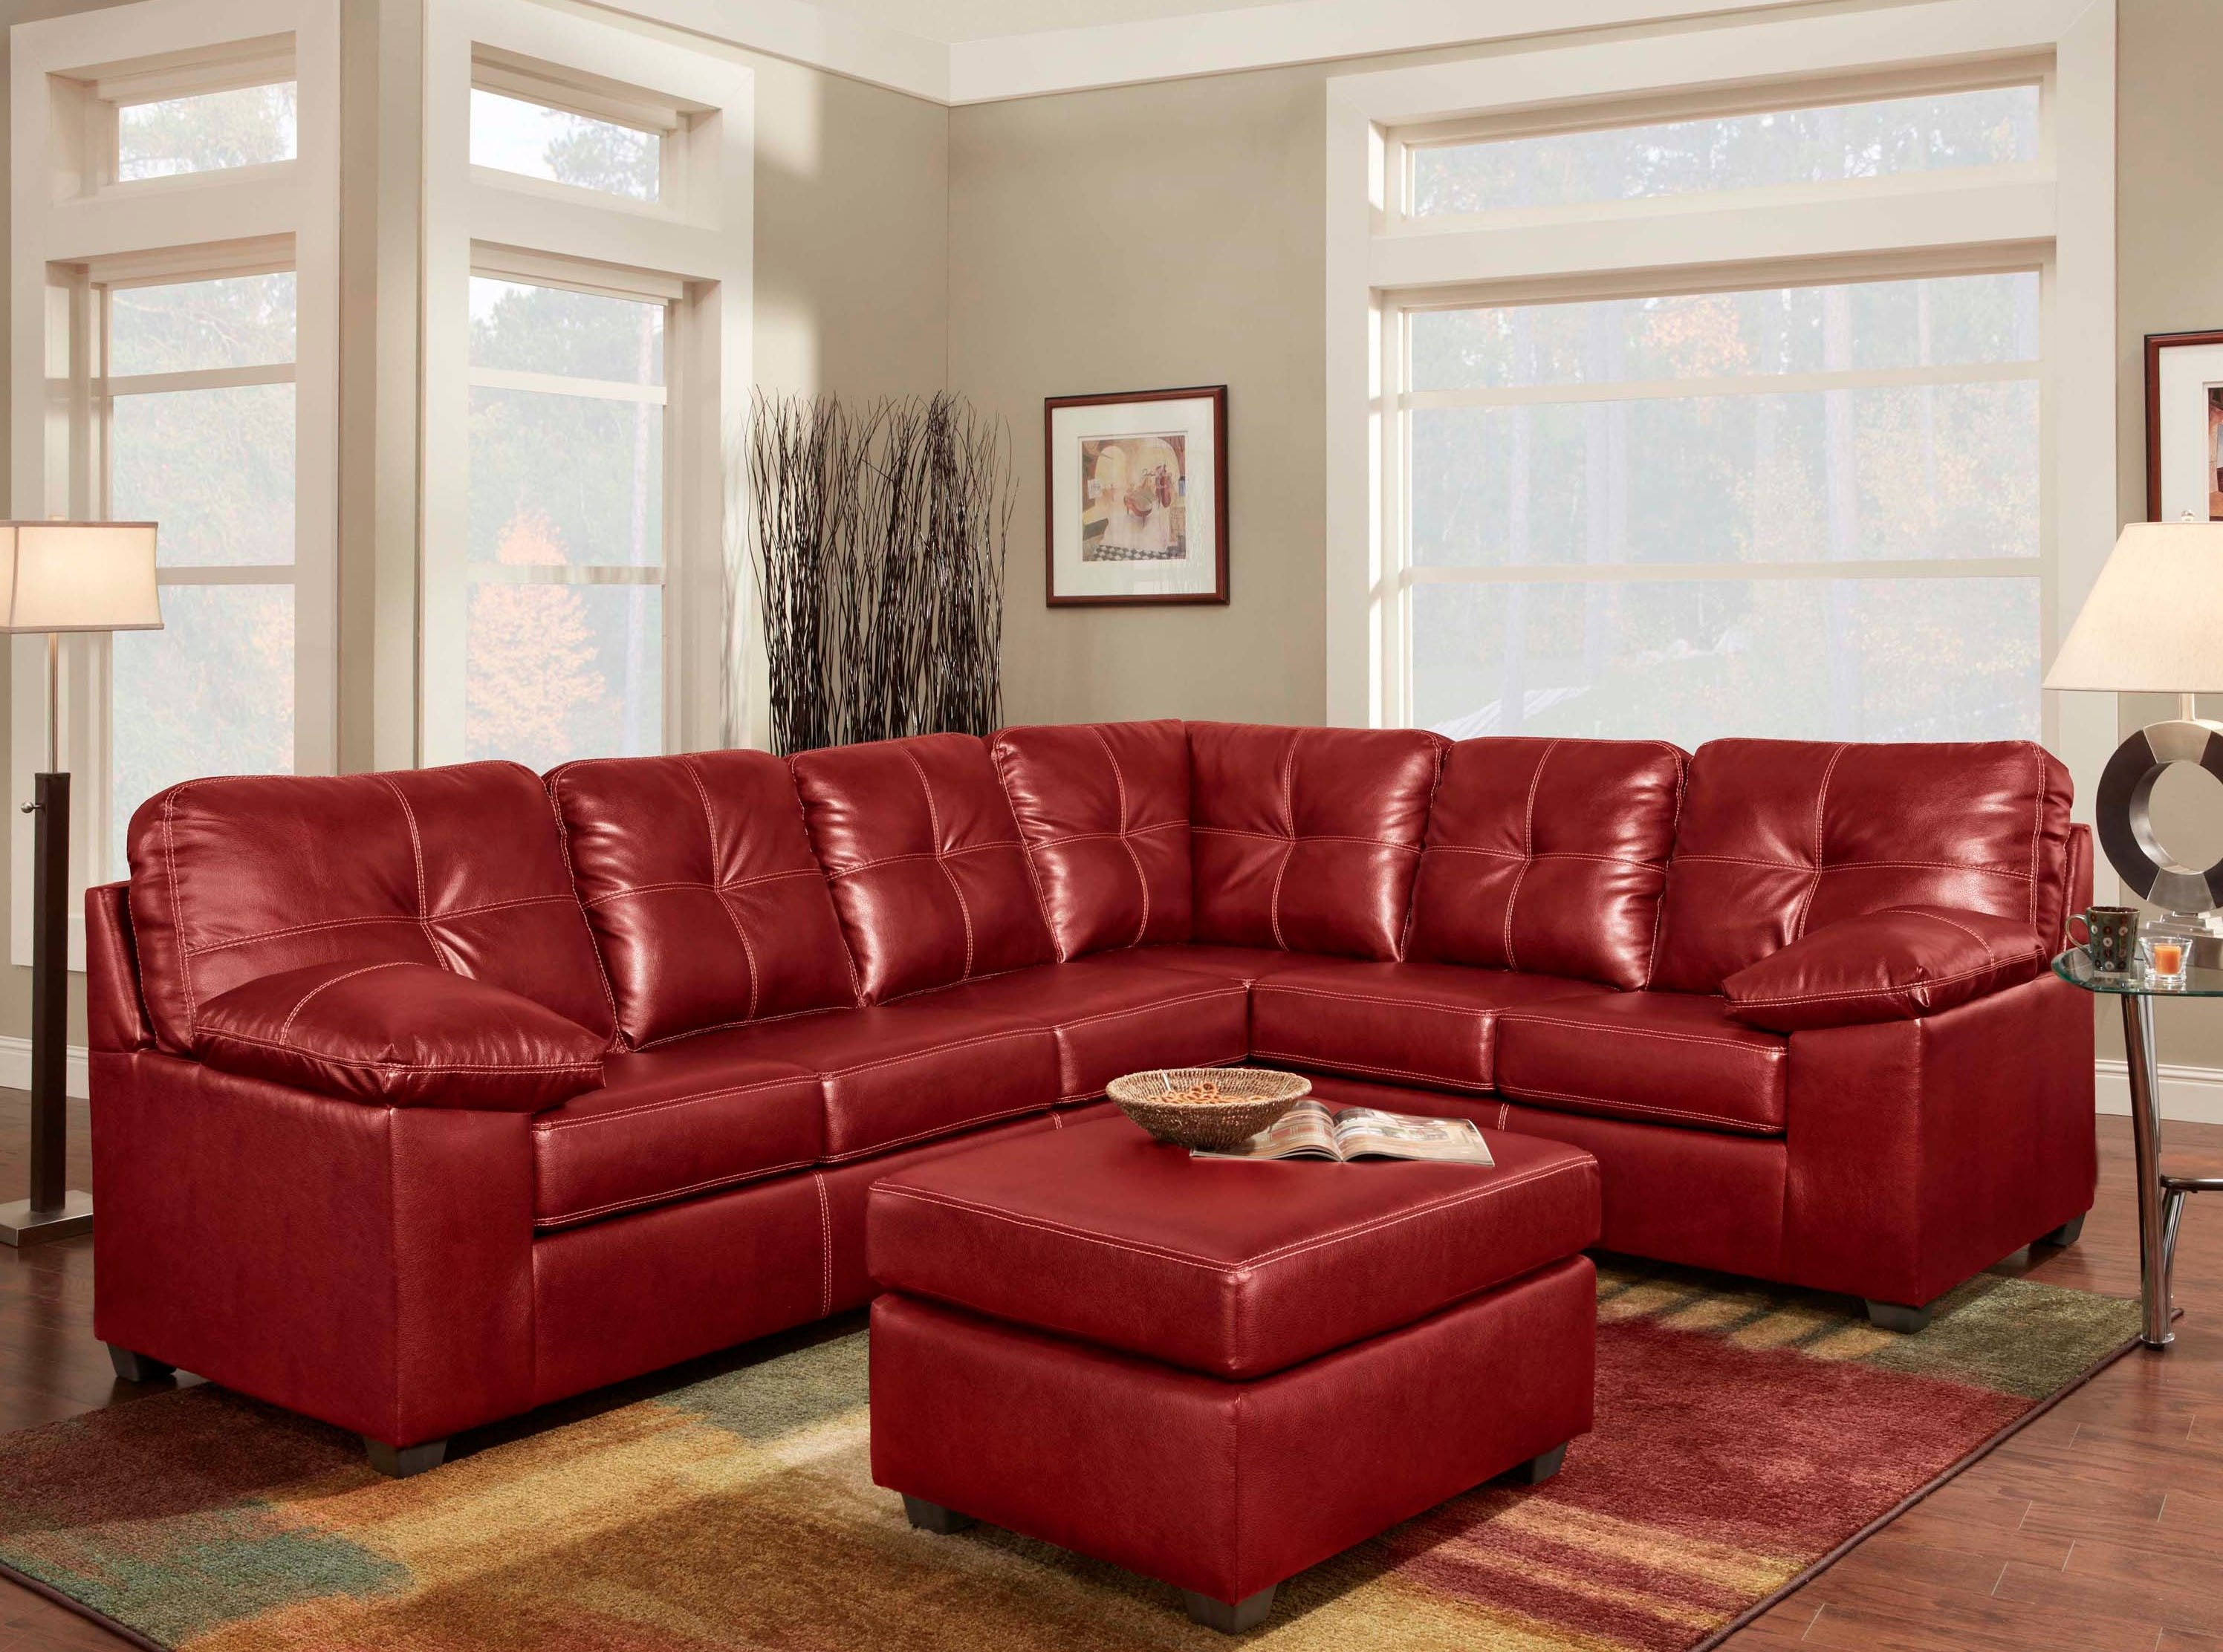 Lipstick Red Sectional Sofa Set   Furnlander ...